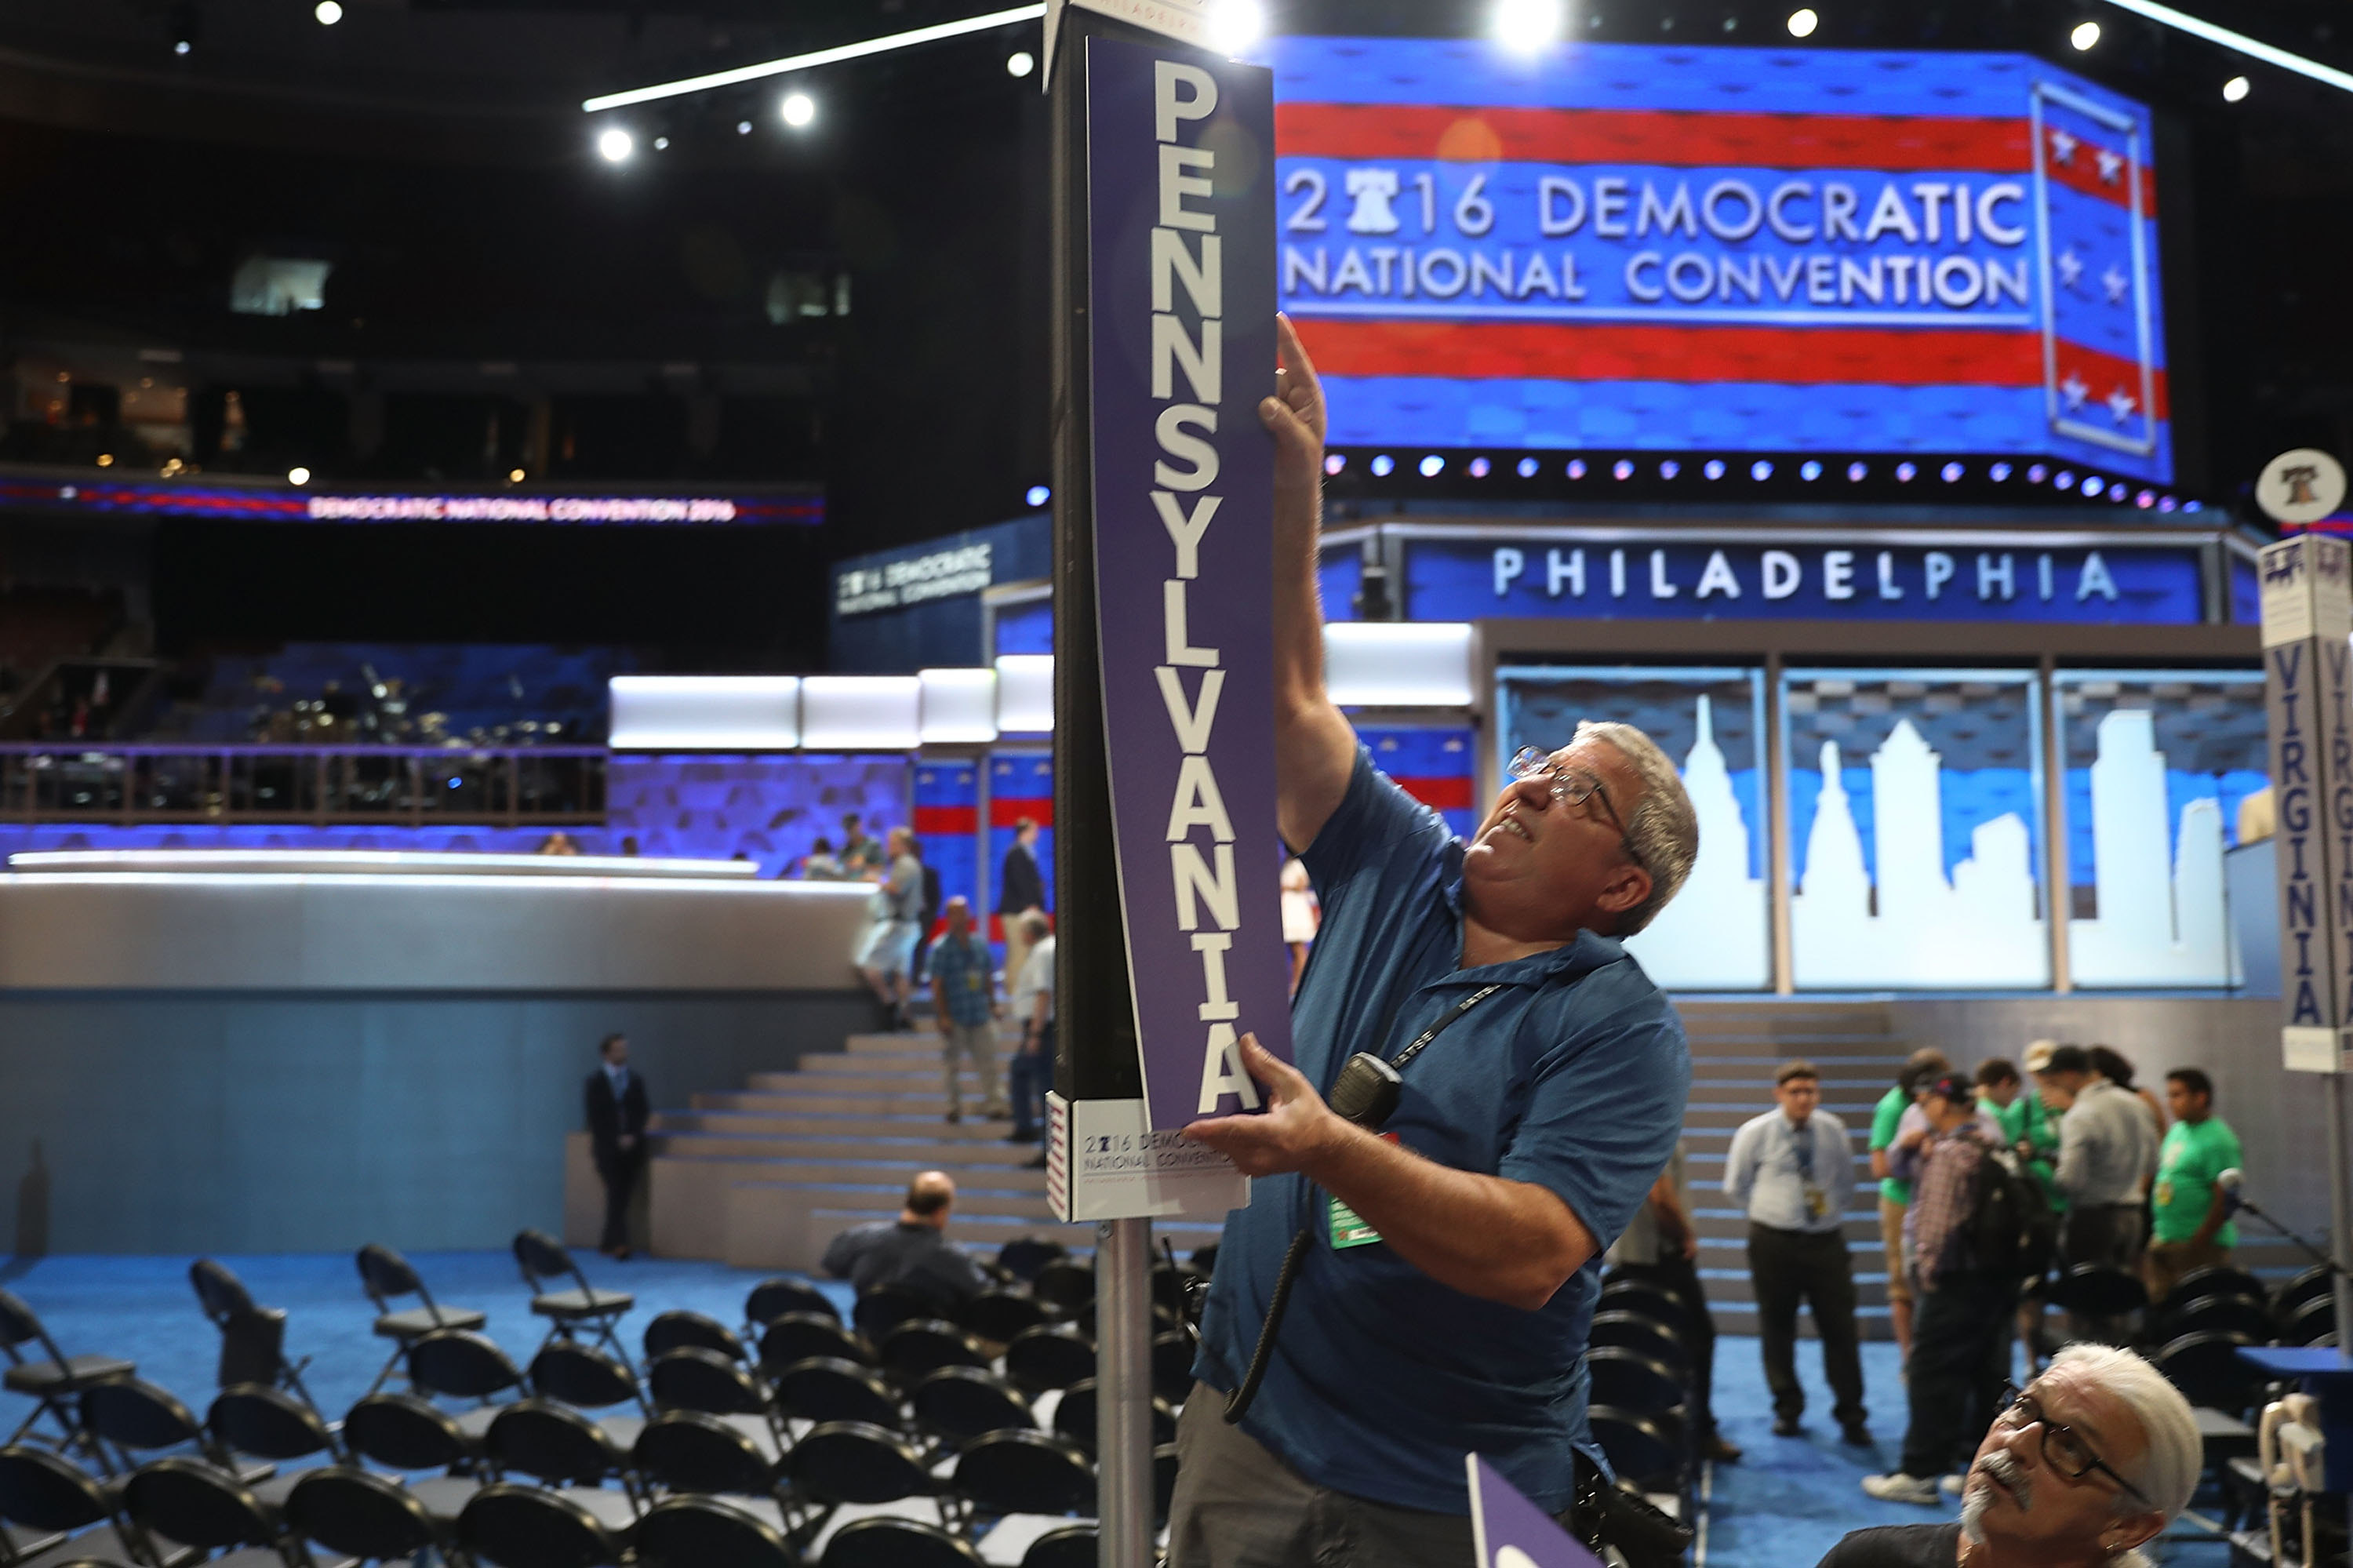 Preparations are underway for the Democratic National Convention in Philadelphia.  (Joe Raedle/Getty Images)